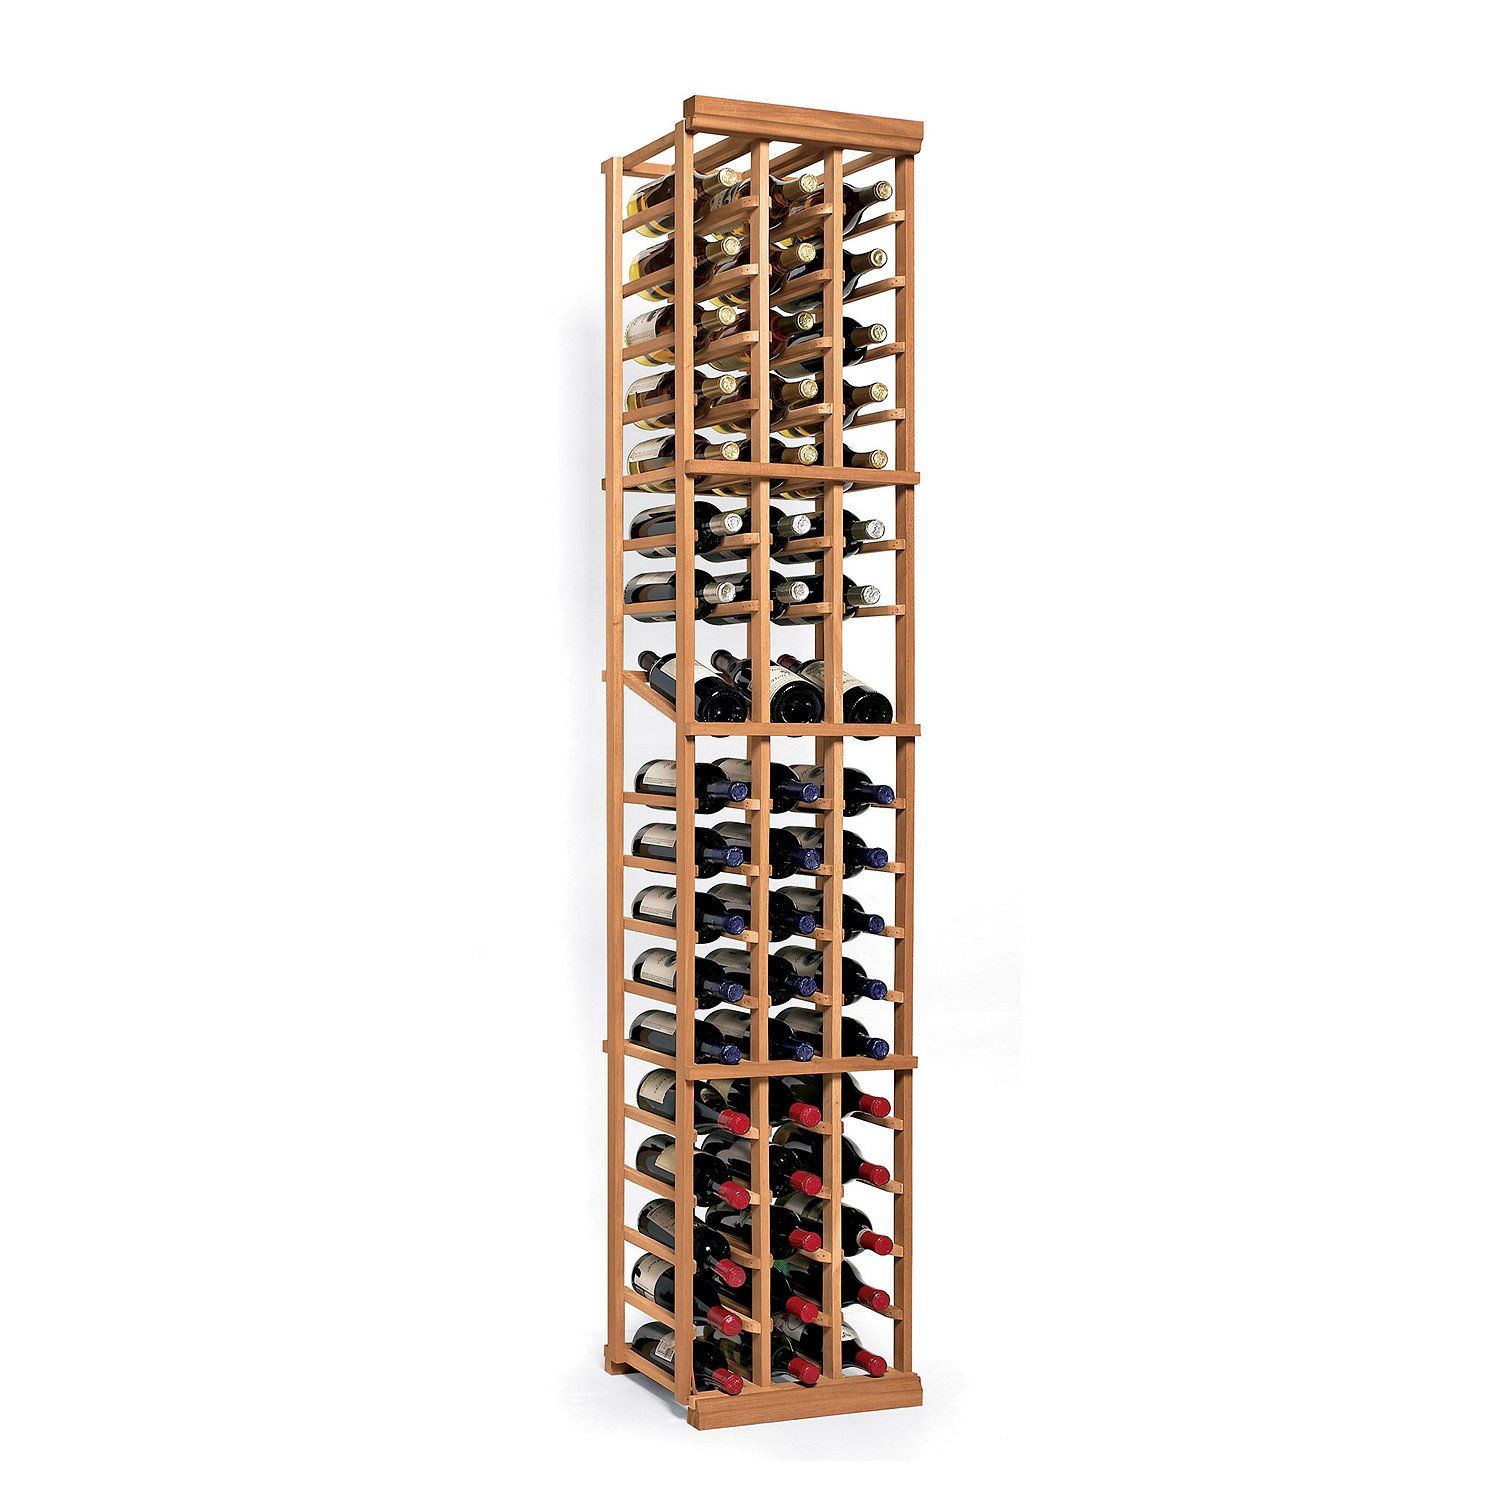 N'FINITY Wine Rack Kit - 3 Column with Display - Natural Finish - Solid Mahogany by N'FINITY